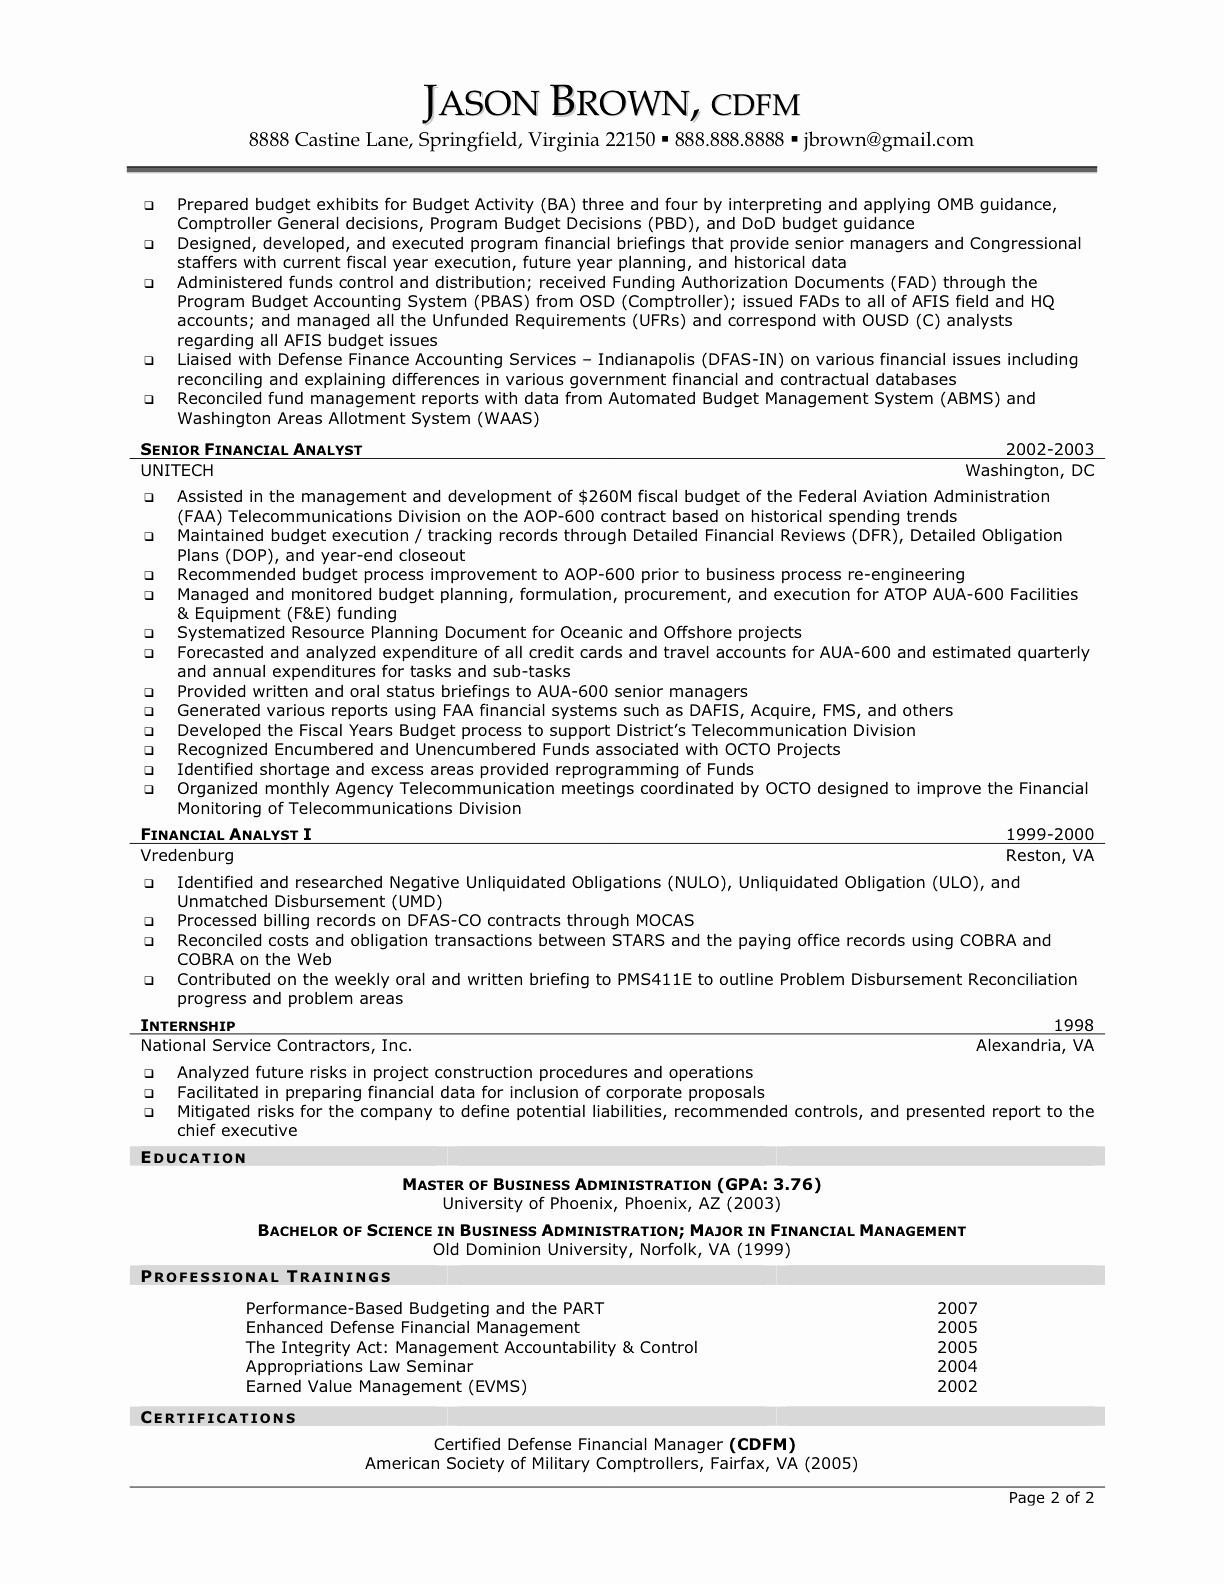 Nursing Student Cv Example Luxus Sample Resume Unique Proposal Magang Luxury American Of